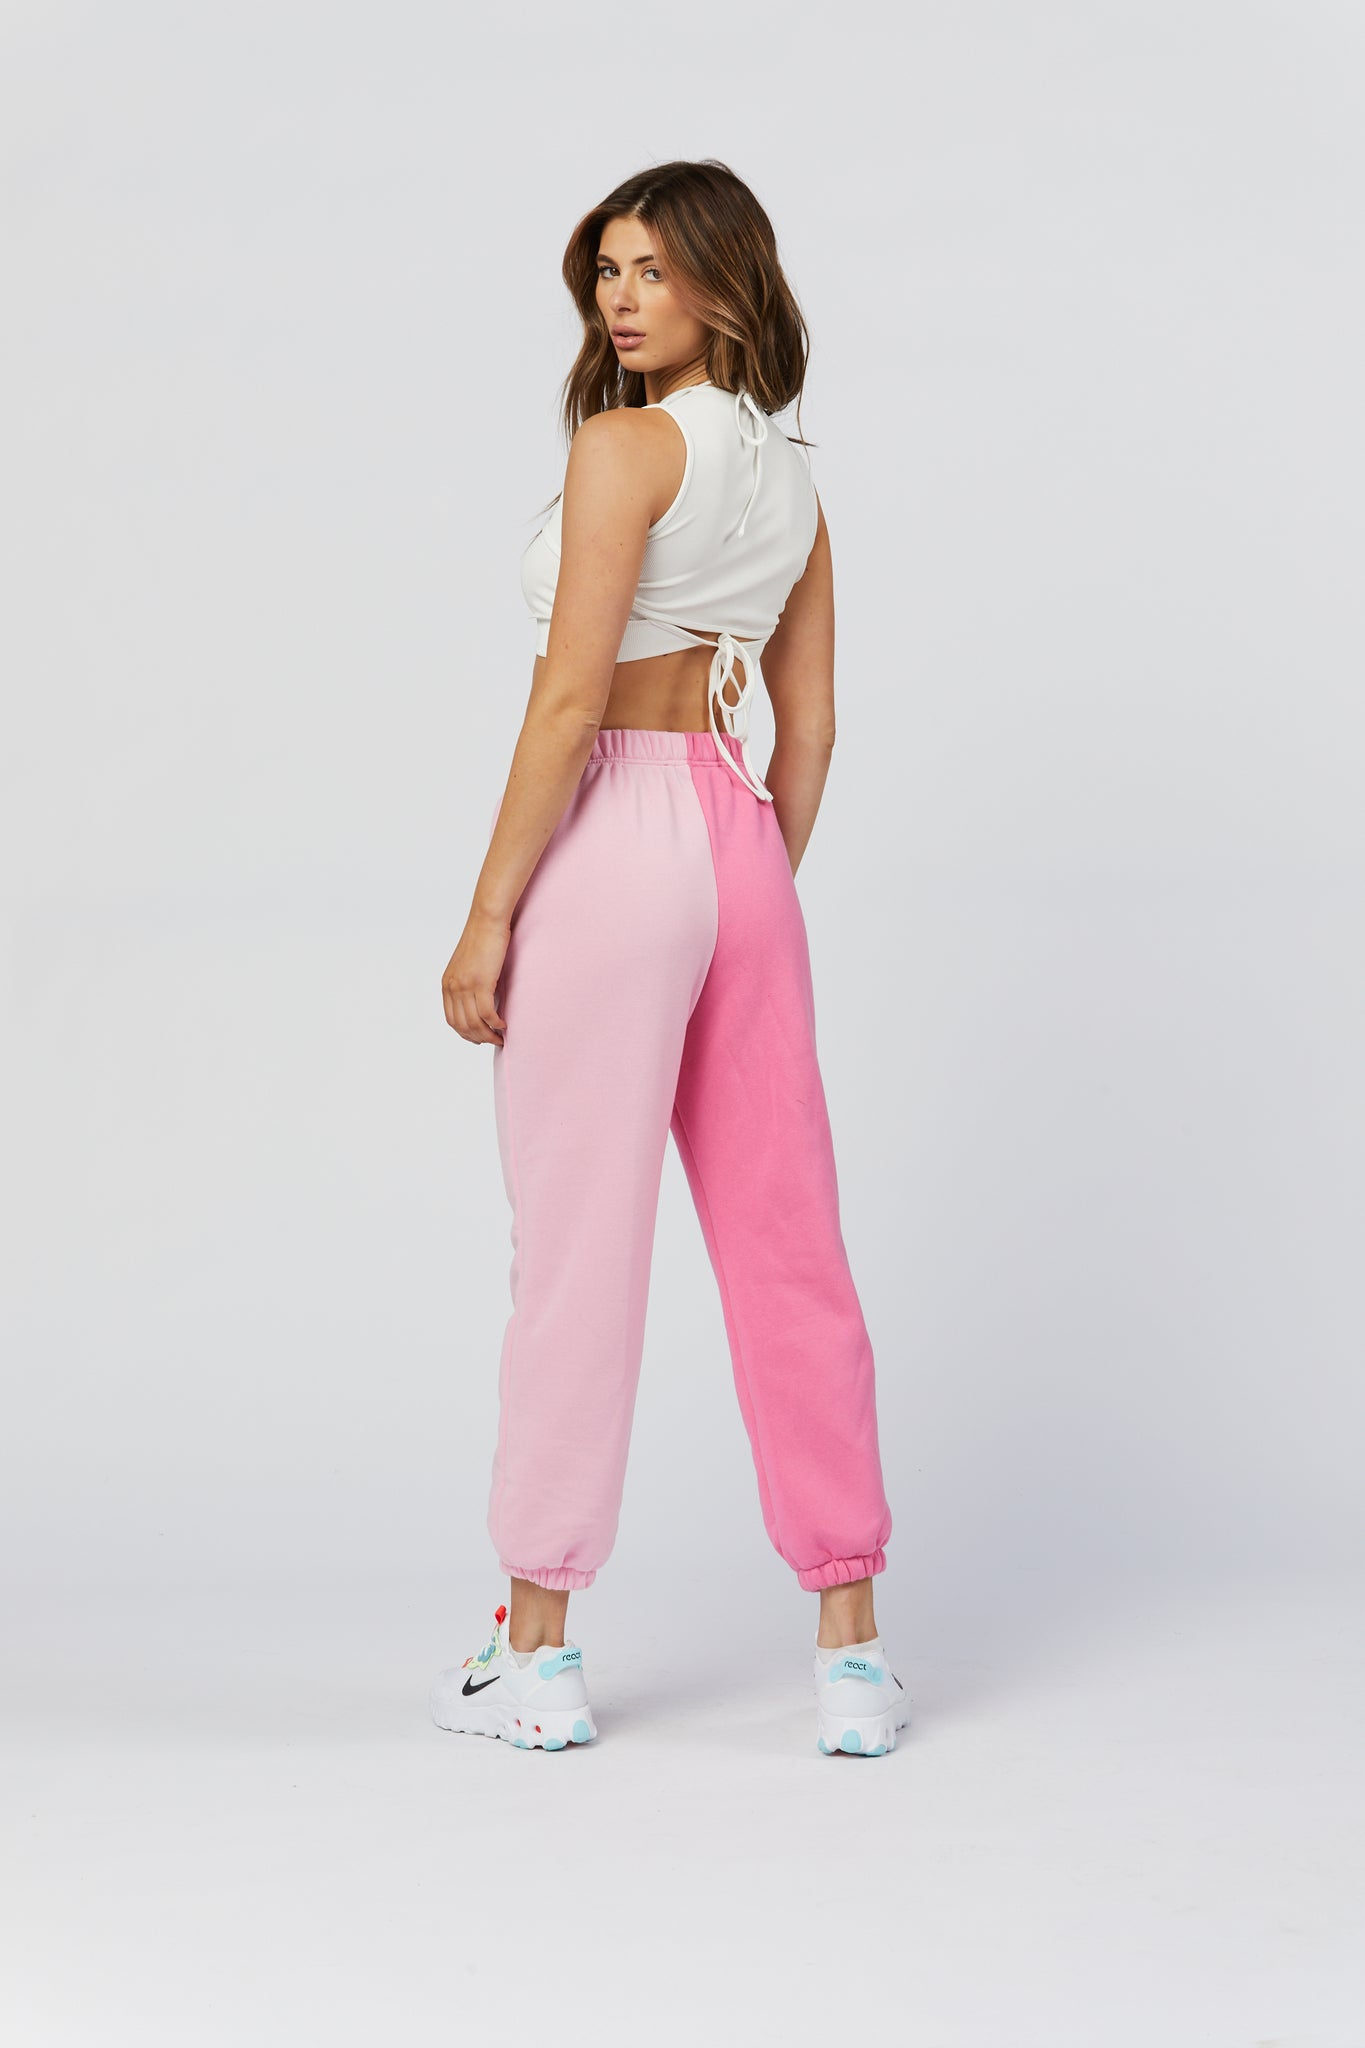 Two Tone Sweats - Pink